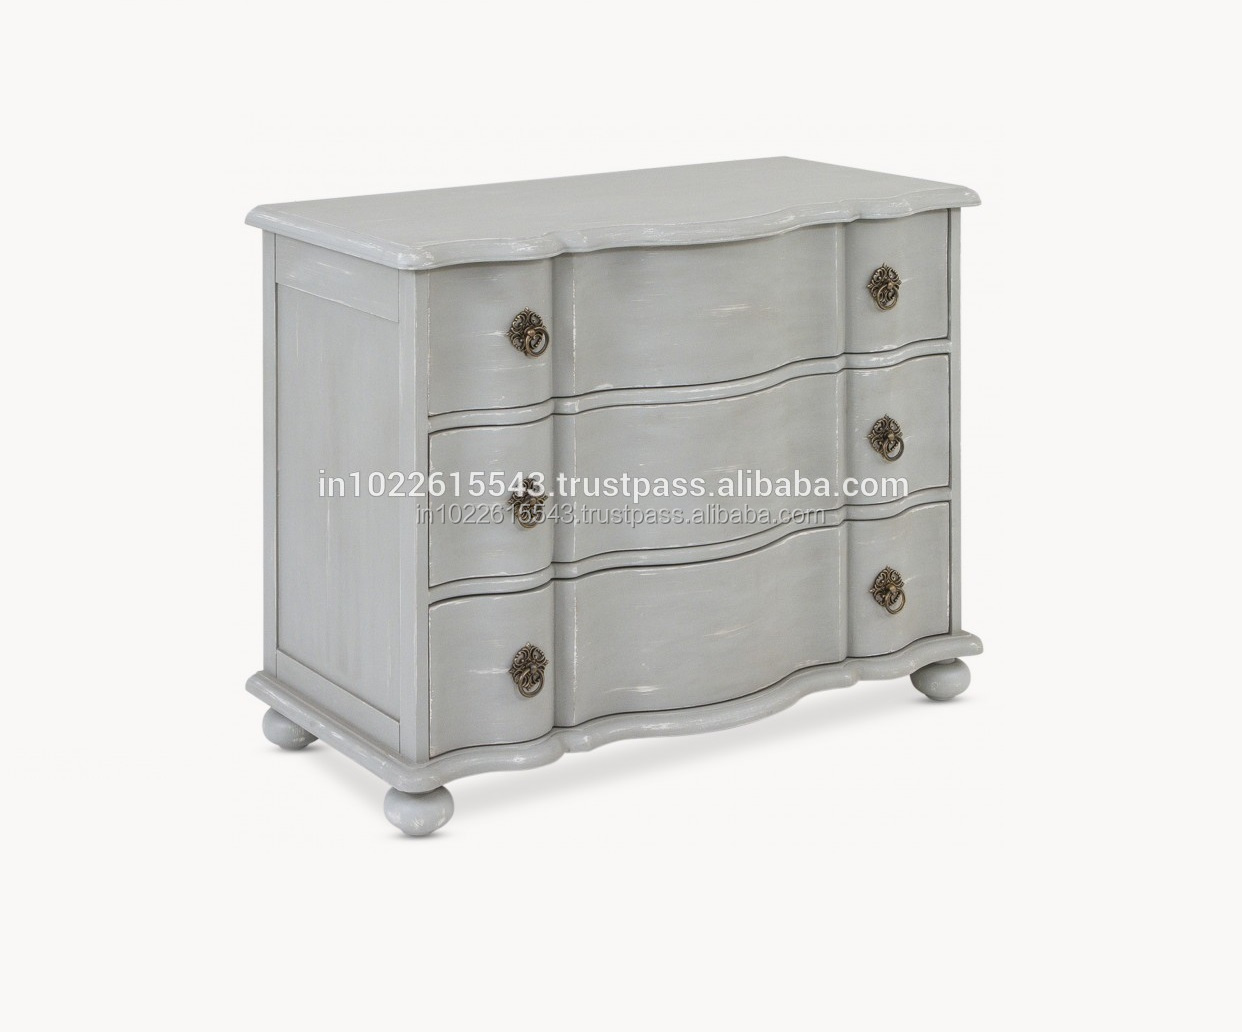 Sideboard Shabby Chic Industrial Shabby Chic Elegant Sideboard Industrial Rustic Wood Sideboard With Storage Buy Side Board With Drawers Wall Side Board Antique Side